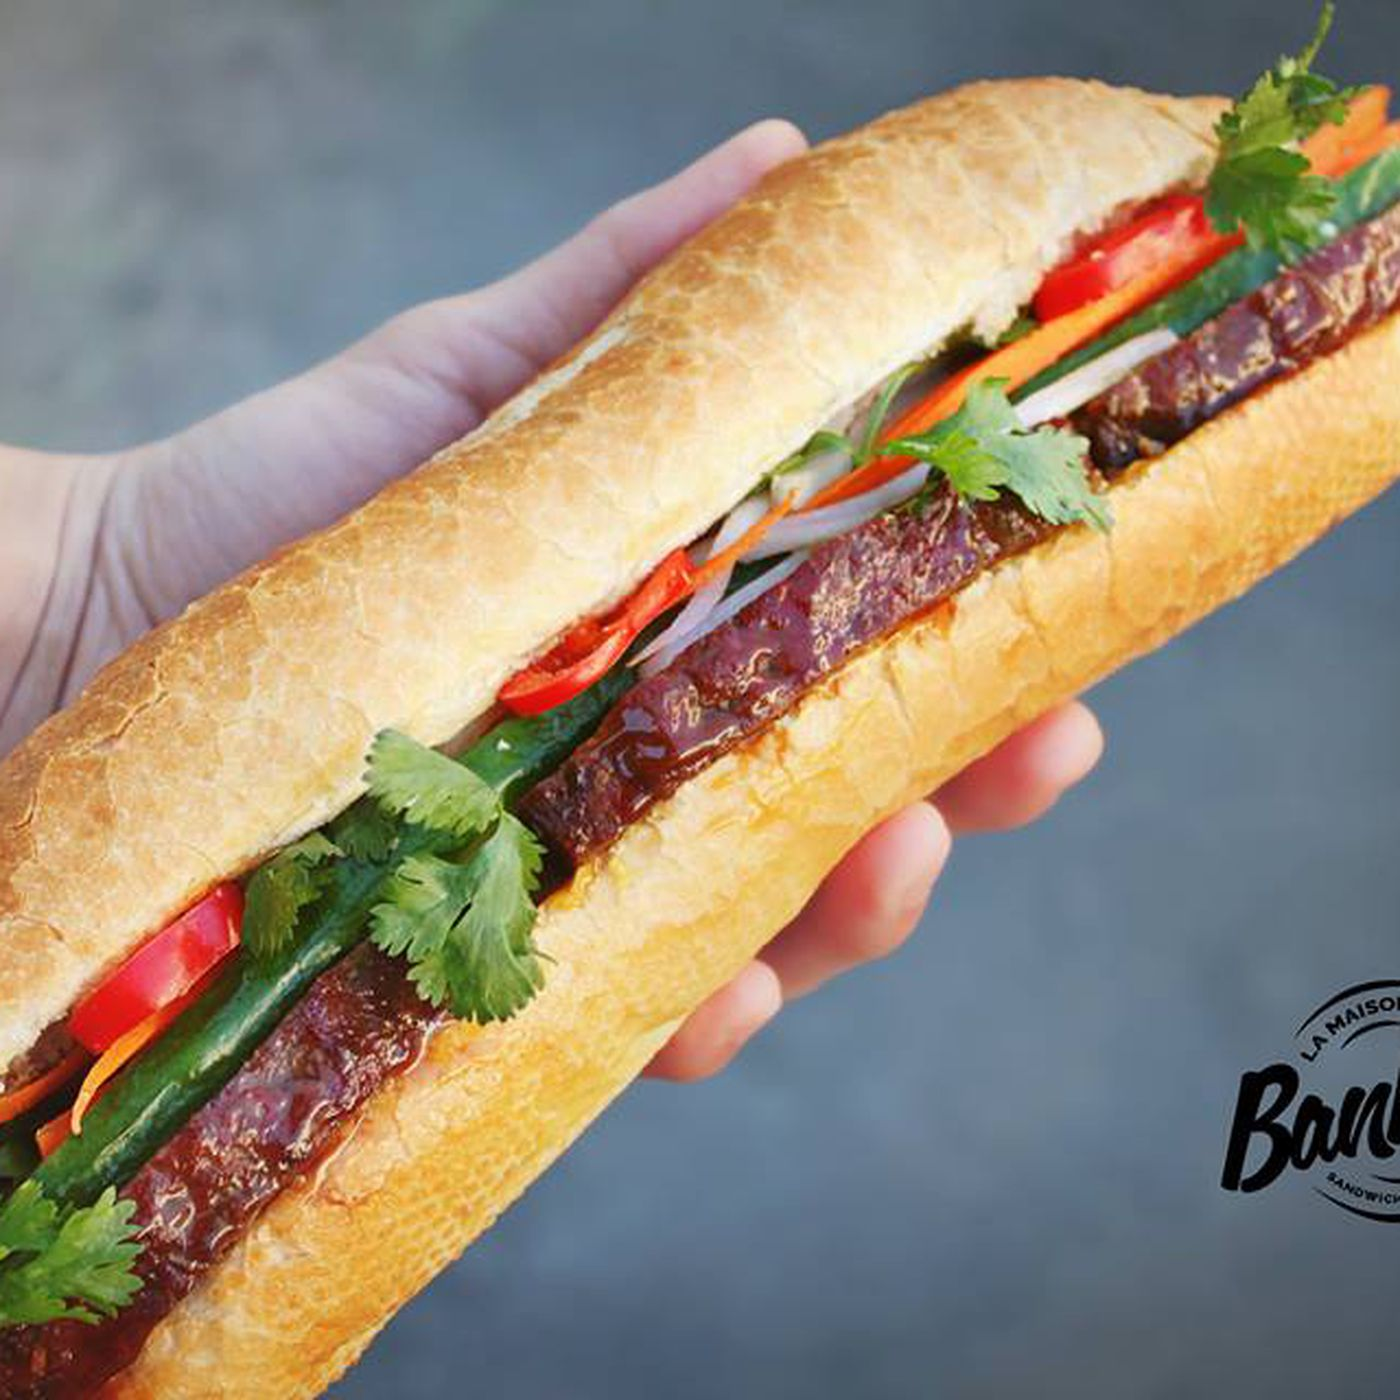 La maison de banh mi makes vietnamese sandwiches in the village